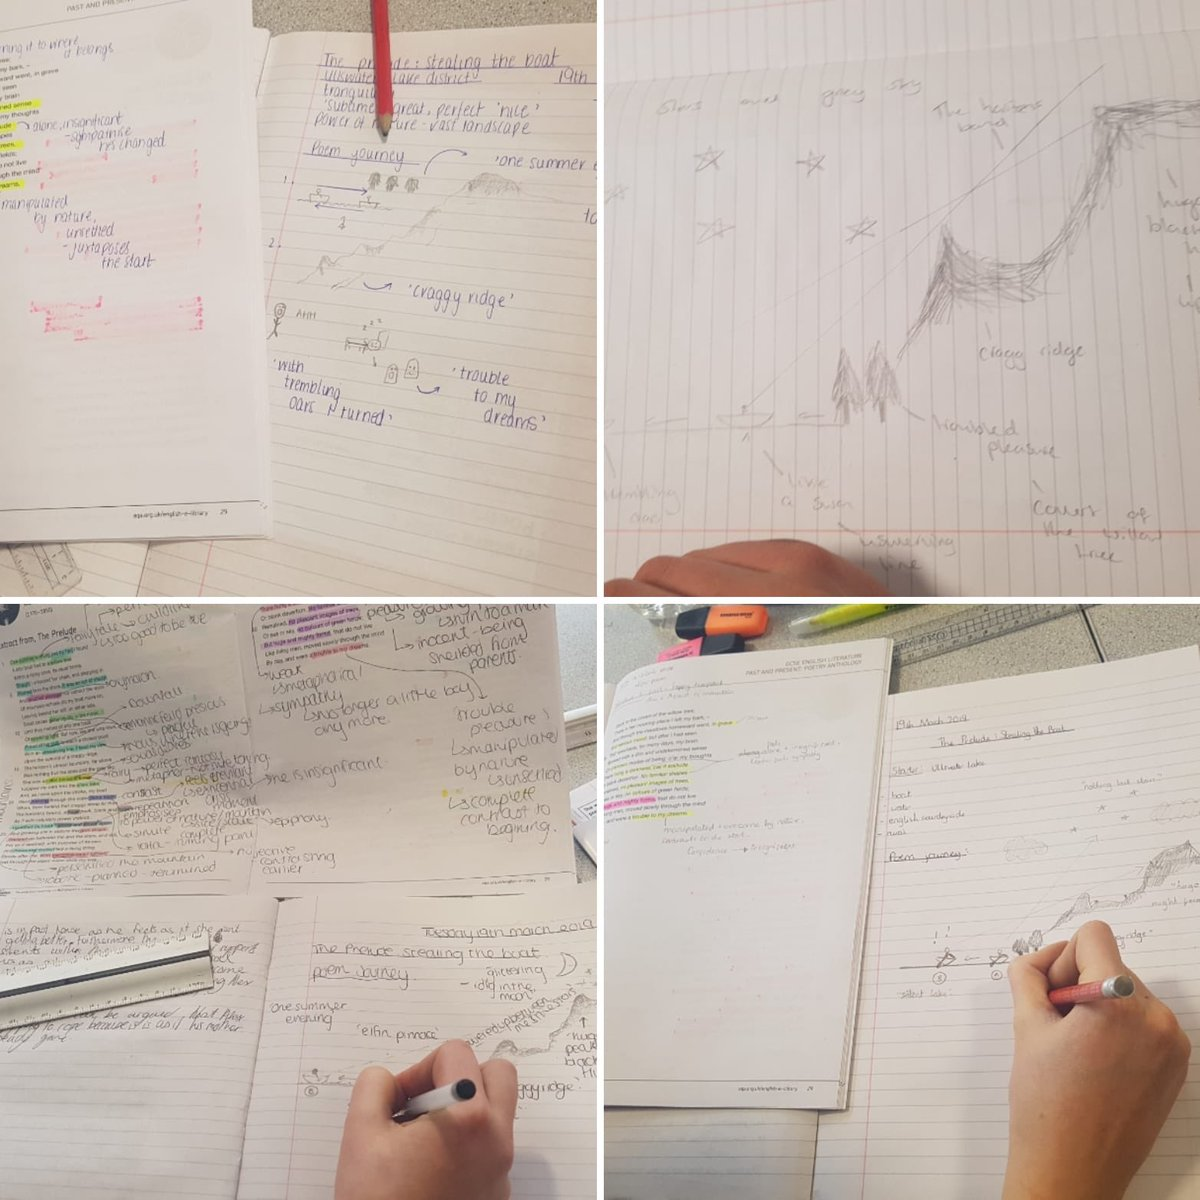 Mrs Griffiths' Y10s have been mapping the journey of the poem 'The Prelude' today, focusing on structural features #poetry #gcse #proudteacher